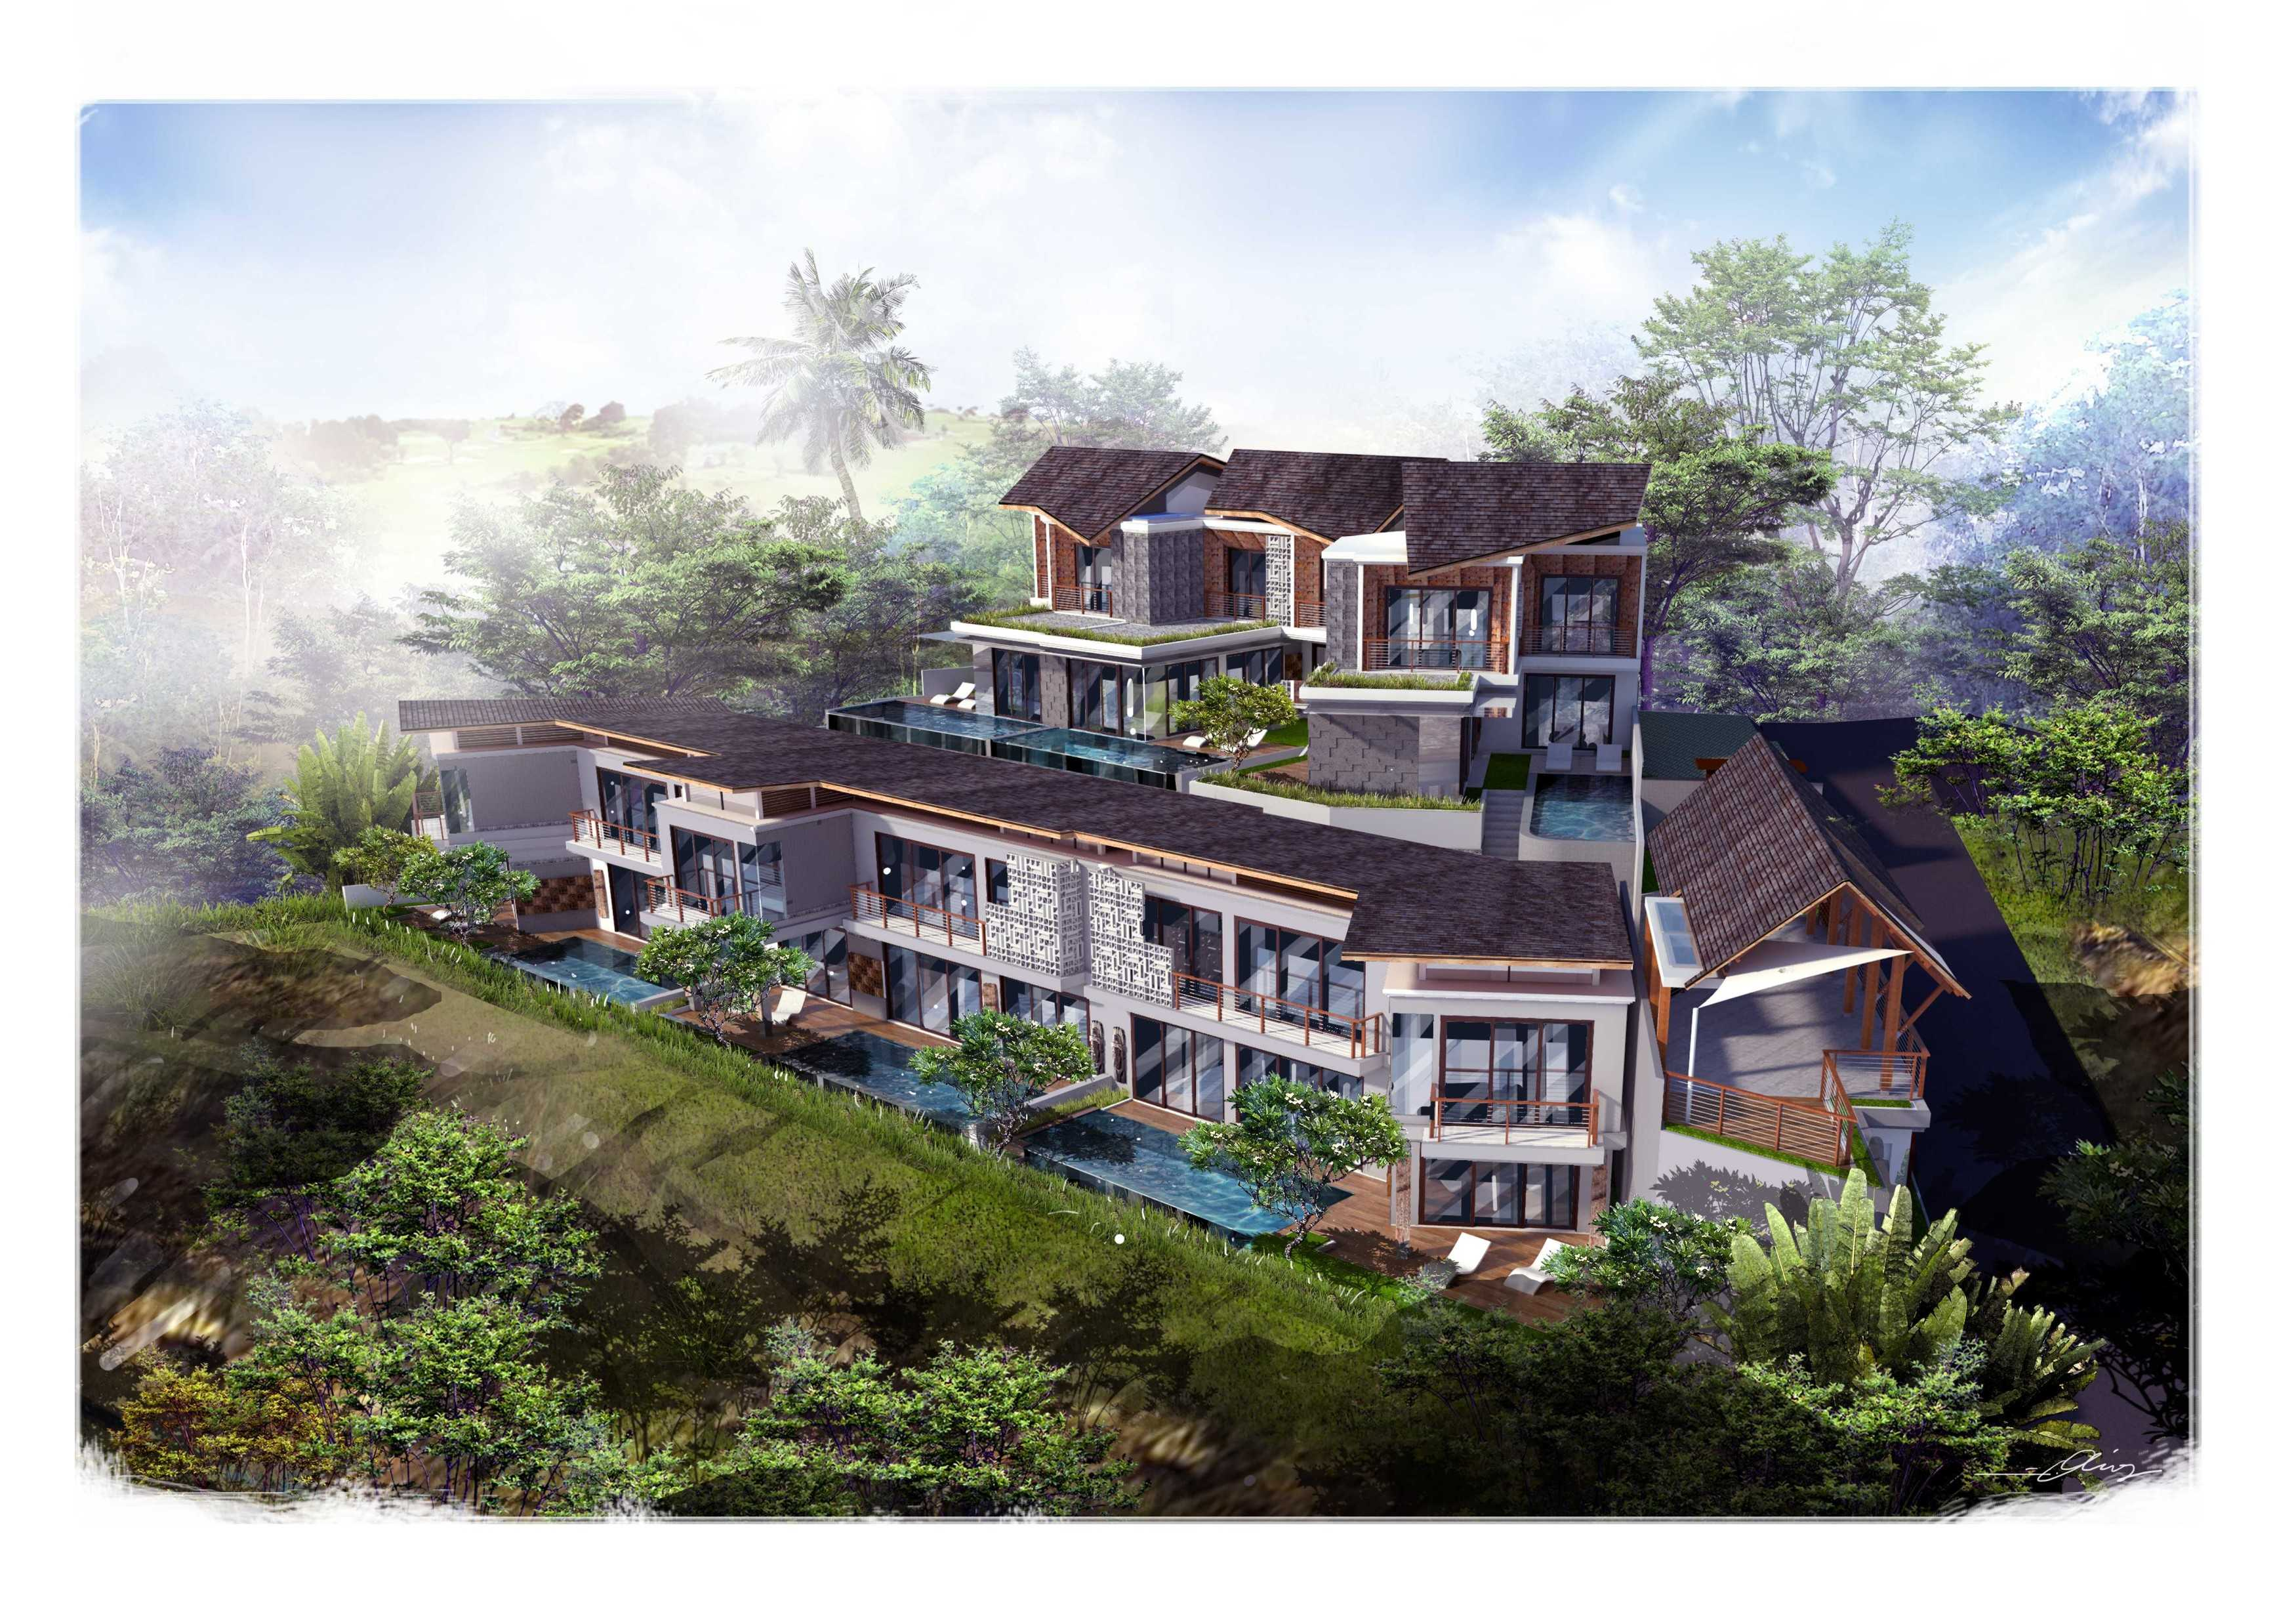 Studio Lumbung Architects Villa Kampi Sawangan Village, Kuta Selatan Sawangan Village, Kuta Selatan Bird Eye View   20329